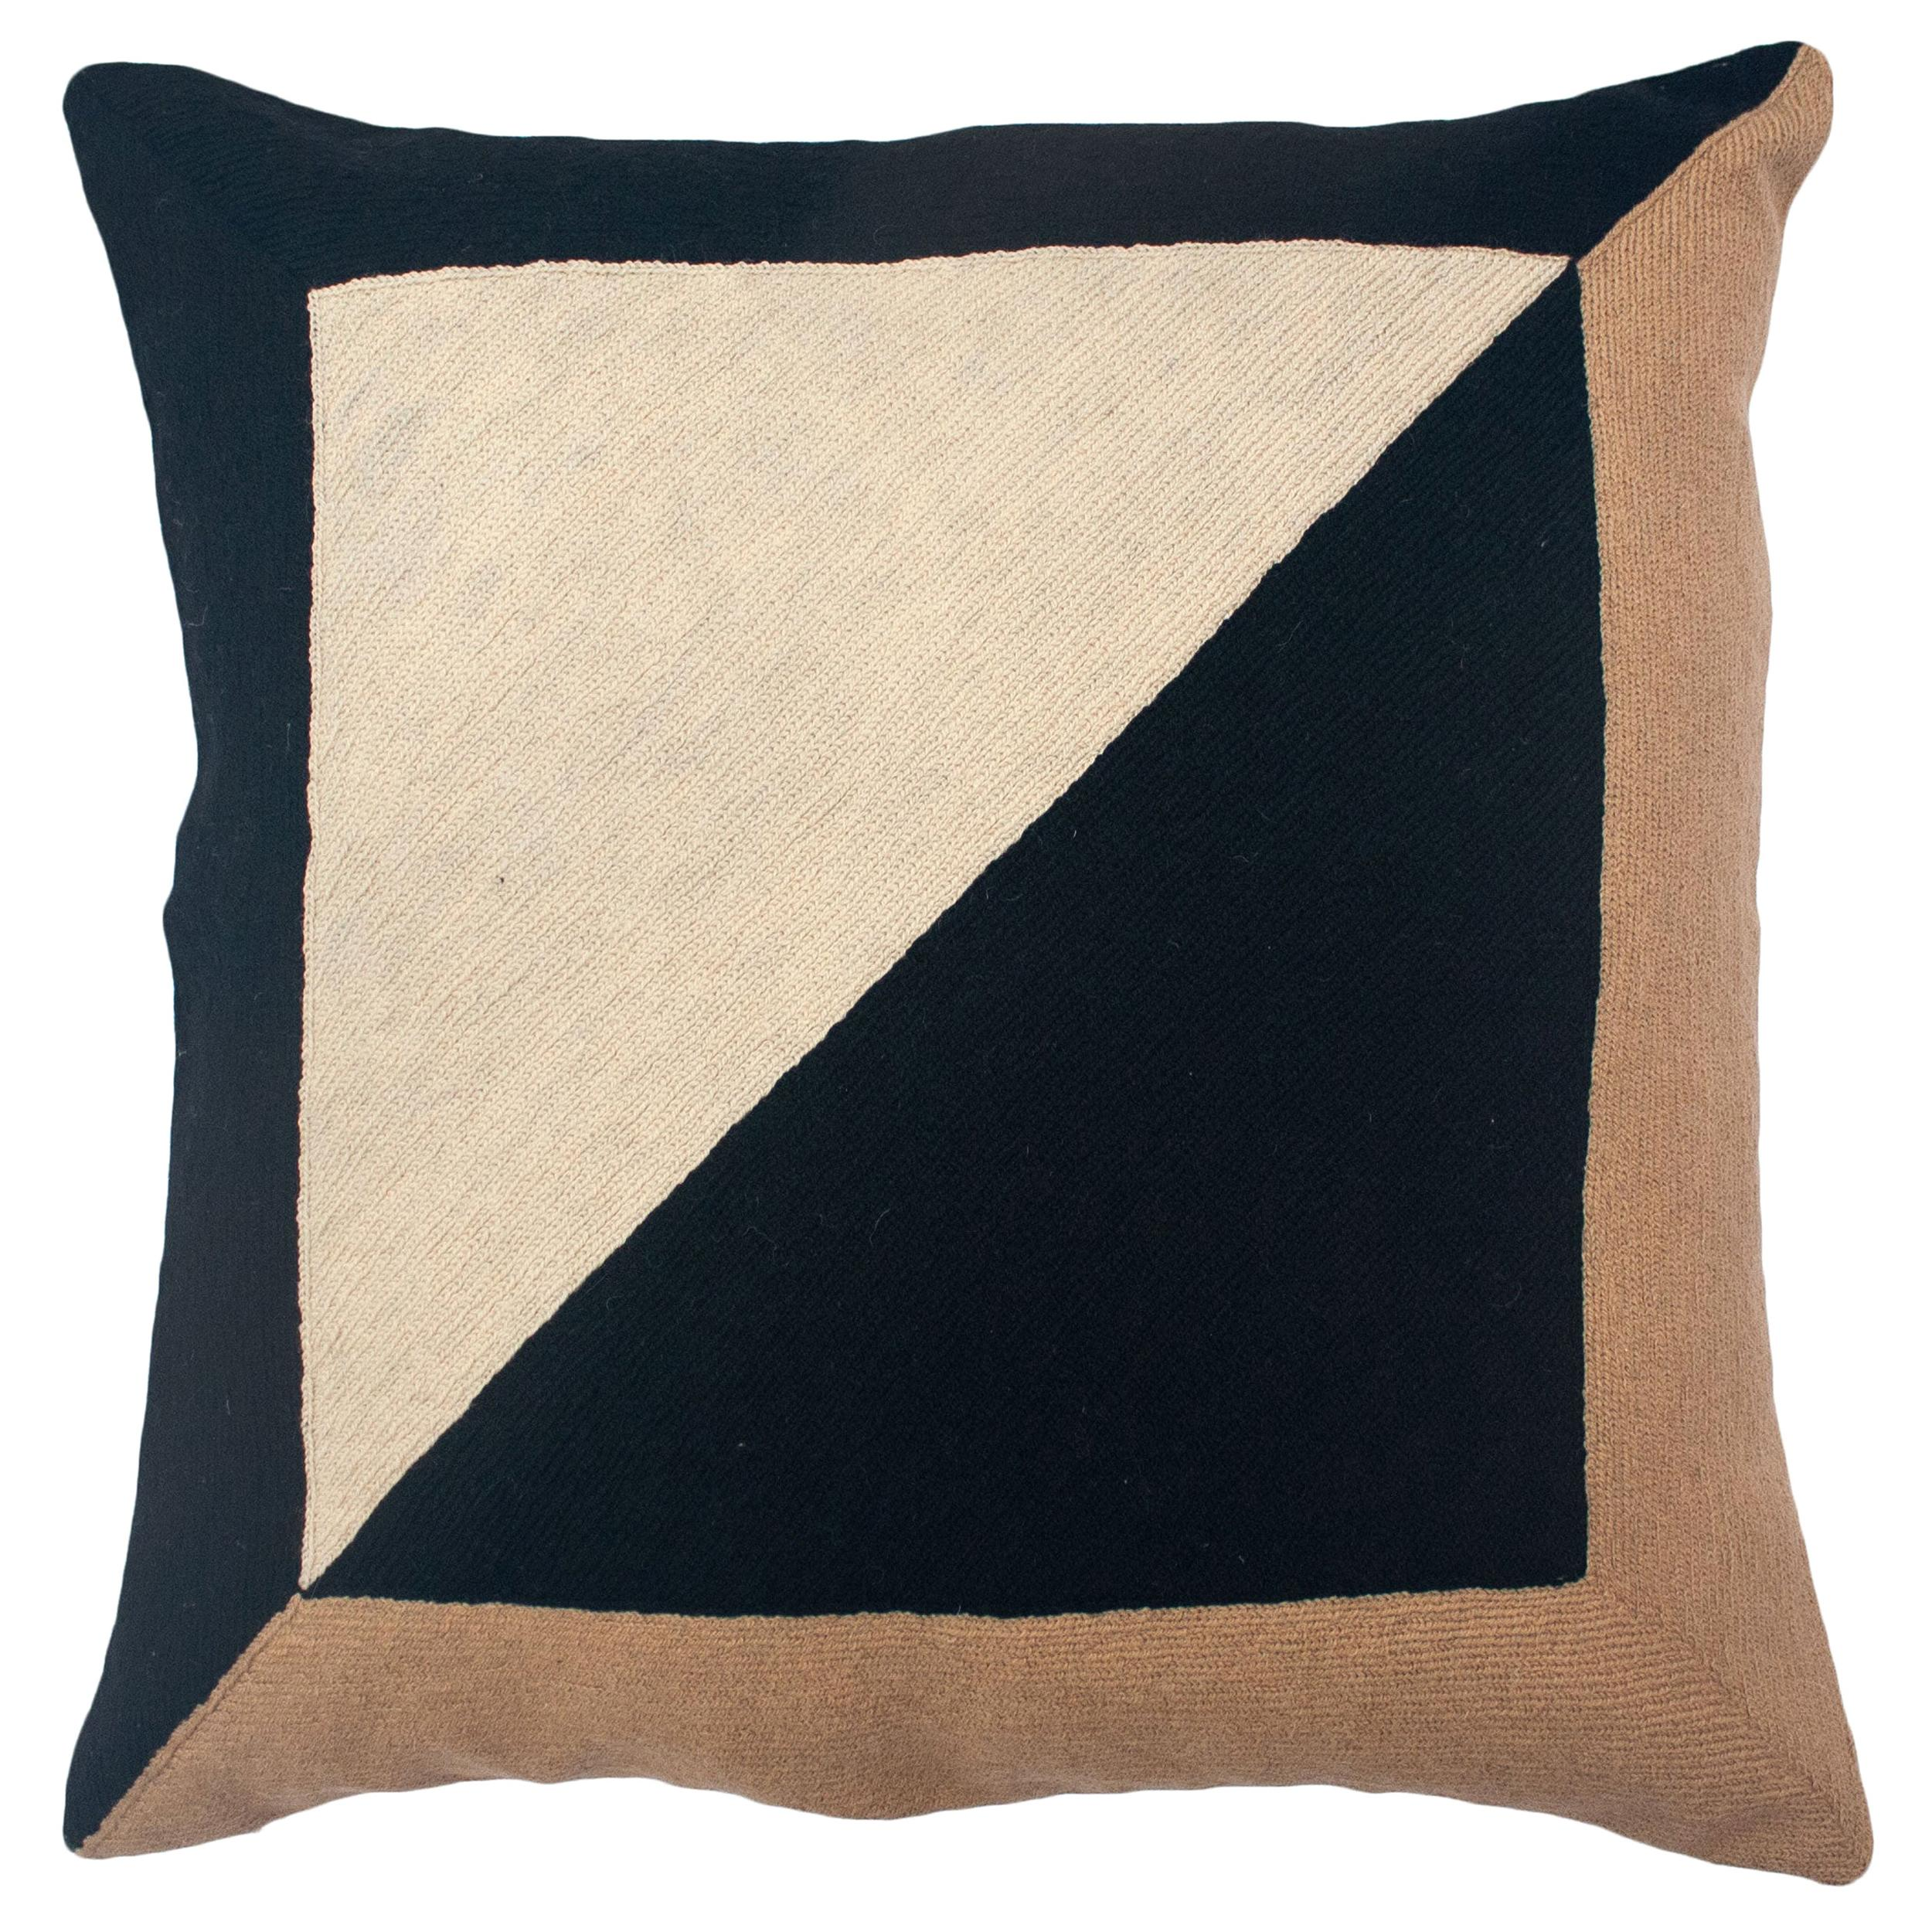 Marianne Square Black Hand Embroidered Modern Geometric Throw Pillow Cover